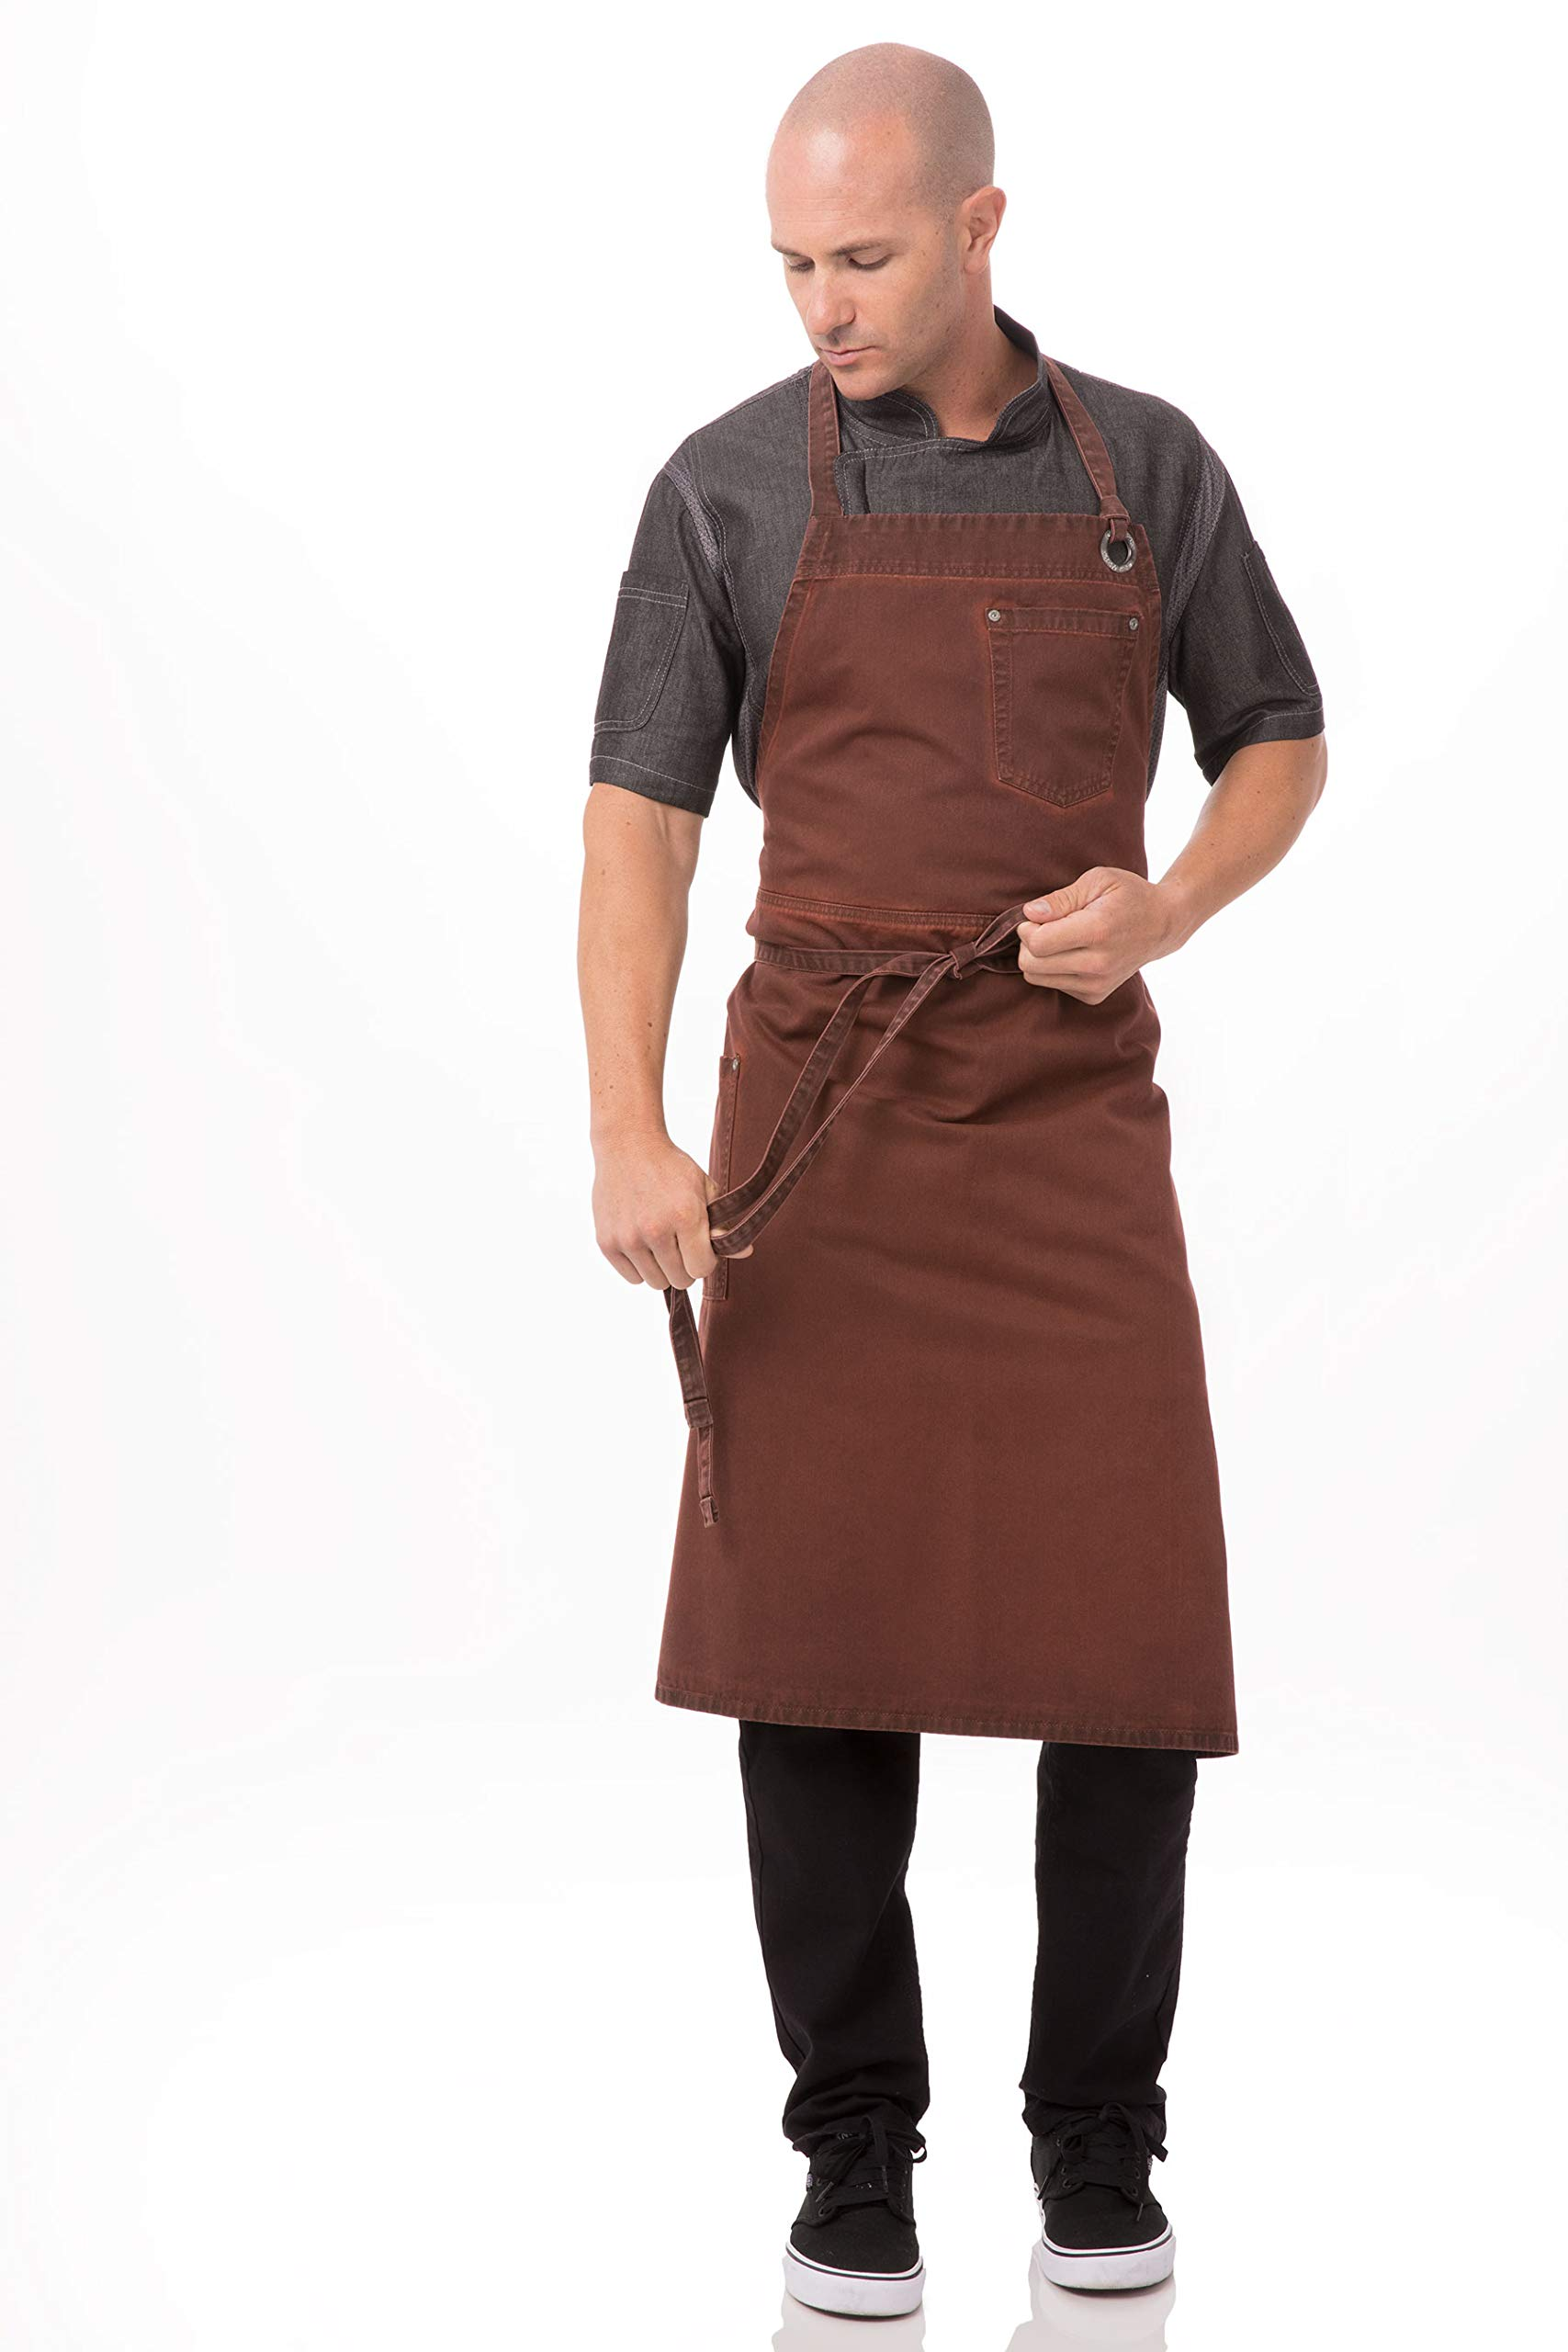 Chef Works Dorset Chefs Bib Apron, Rust, One Size by Chef Works